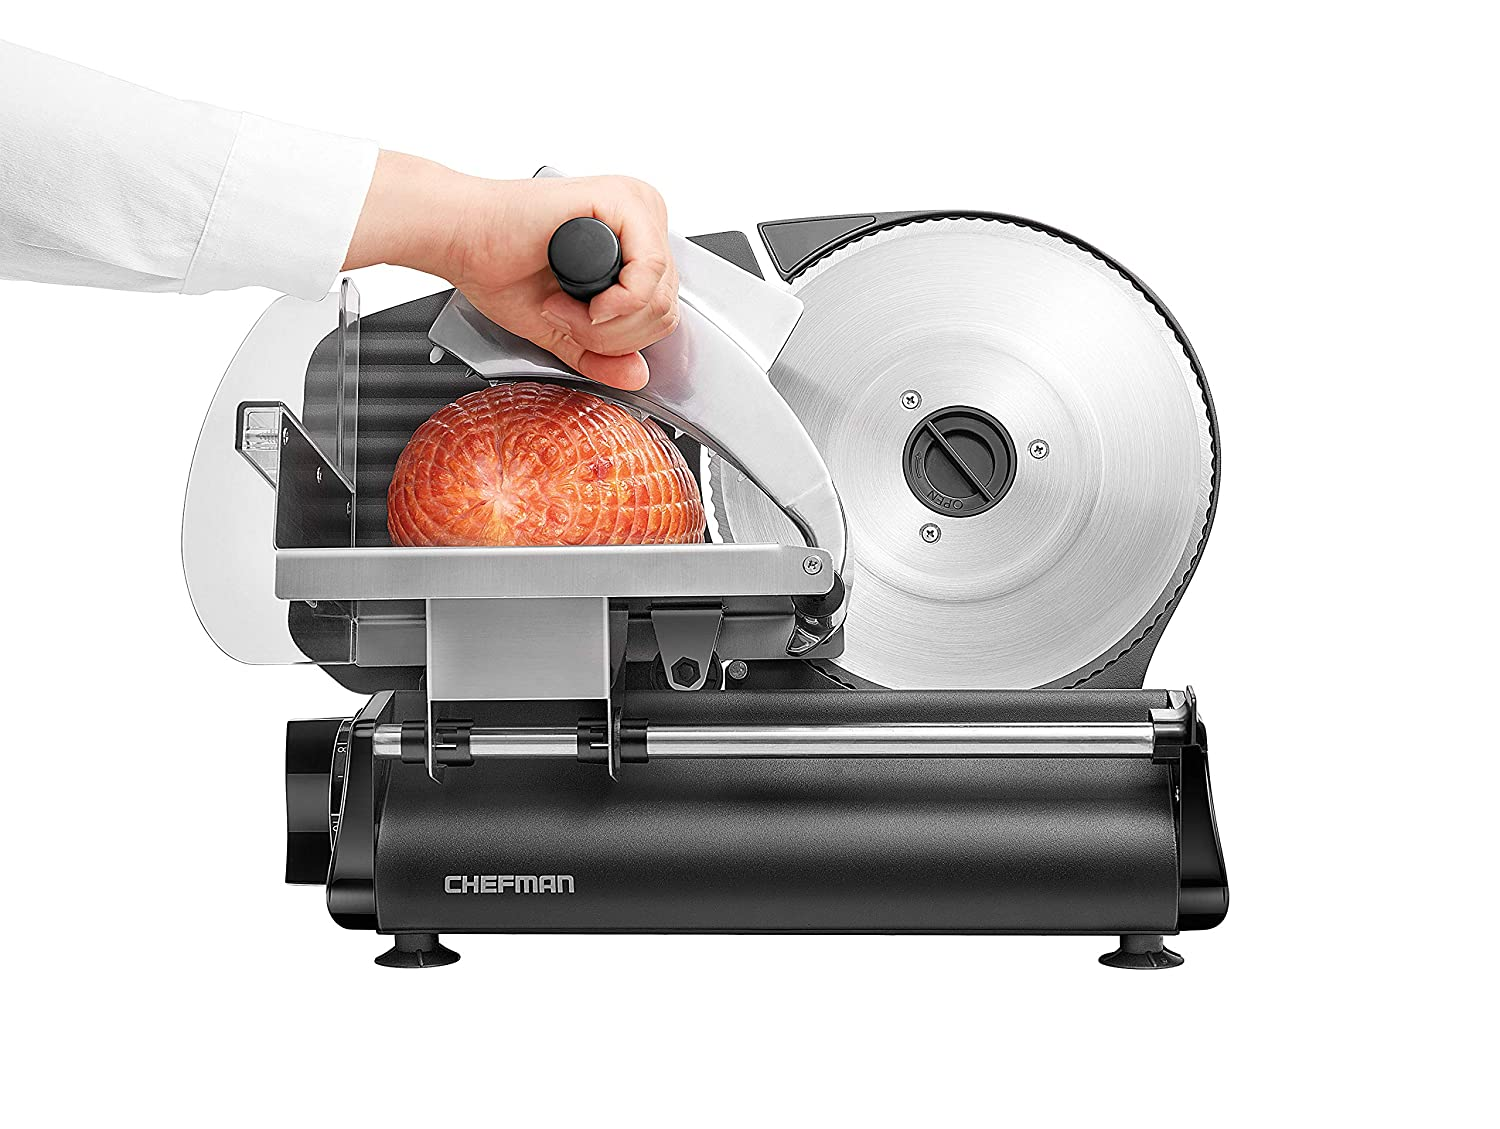 The Best meat slicer - Our pick